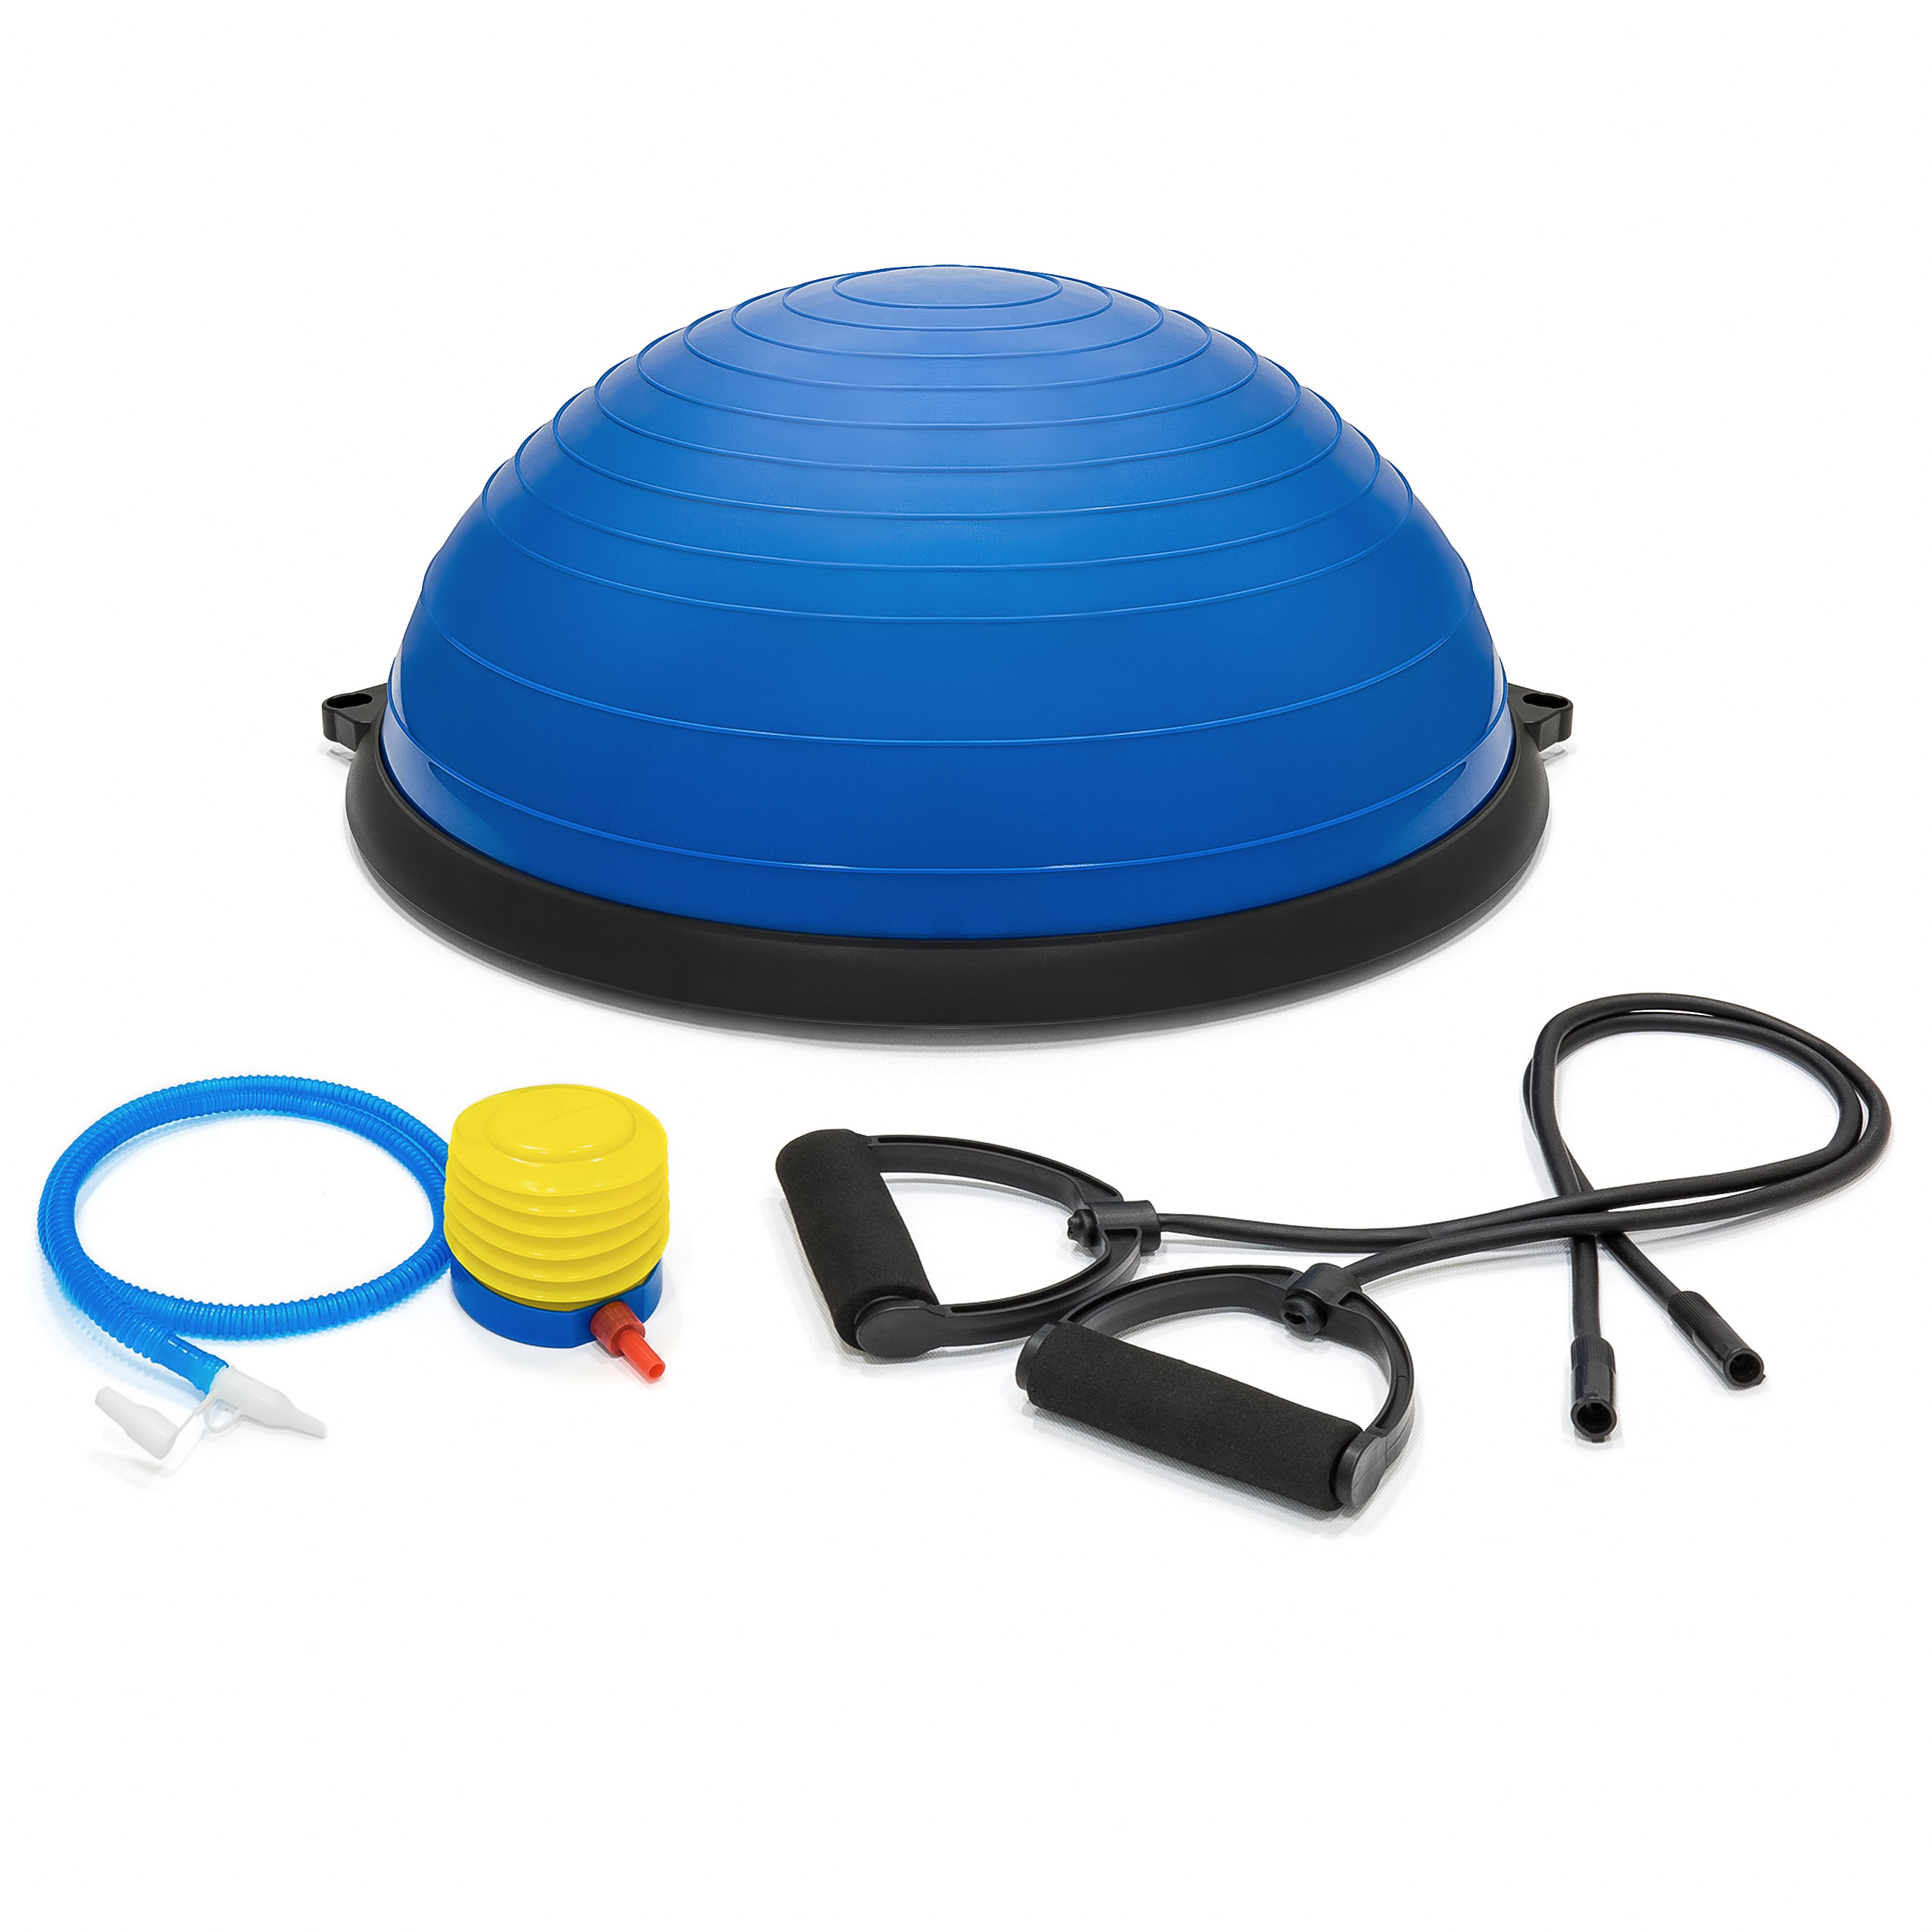 Best Choice Products Yoga Balance Exercise Ball w/ 2 Resistance Bands & Pump - Blue